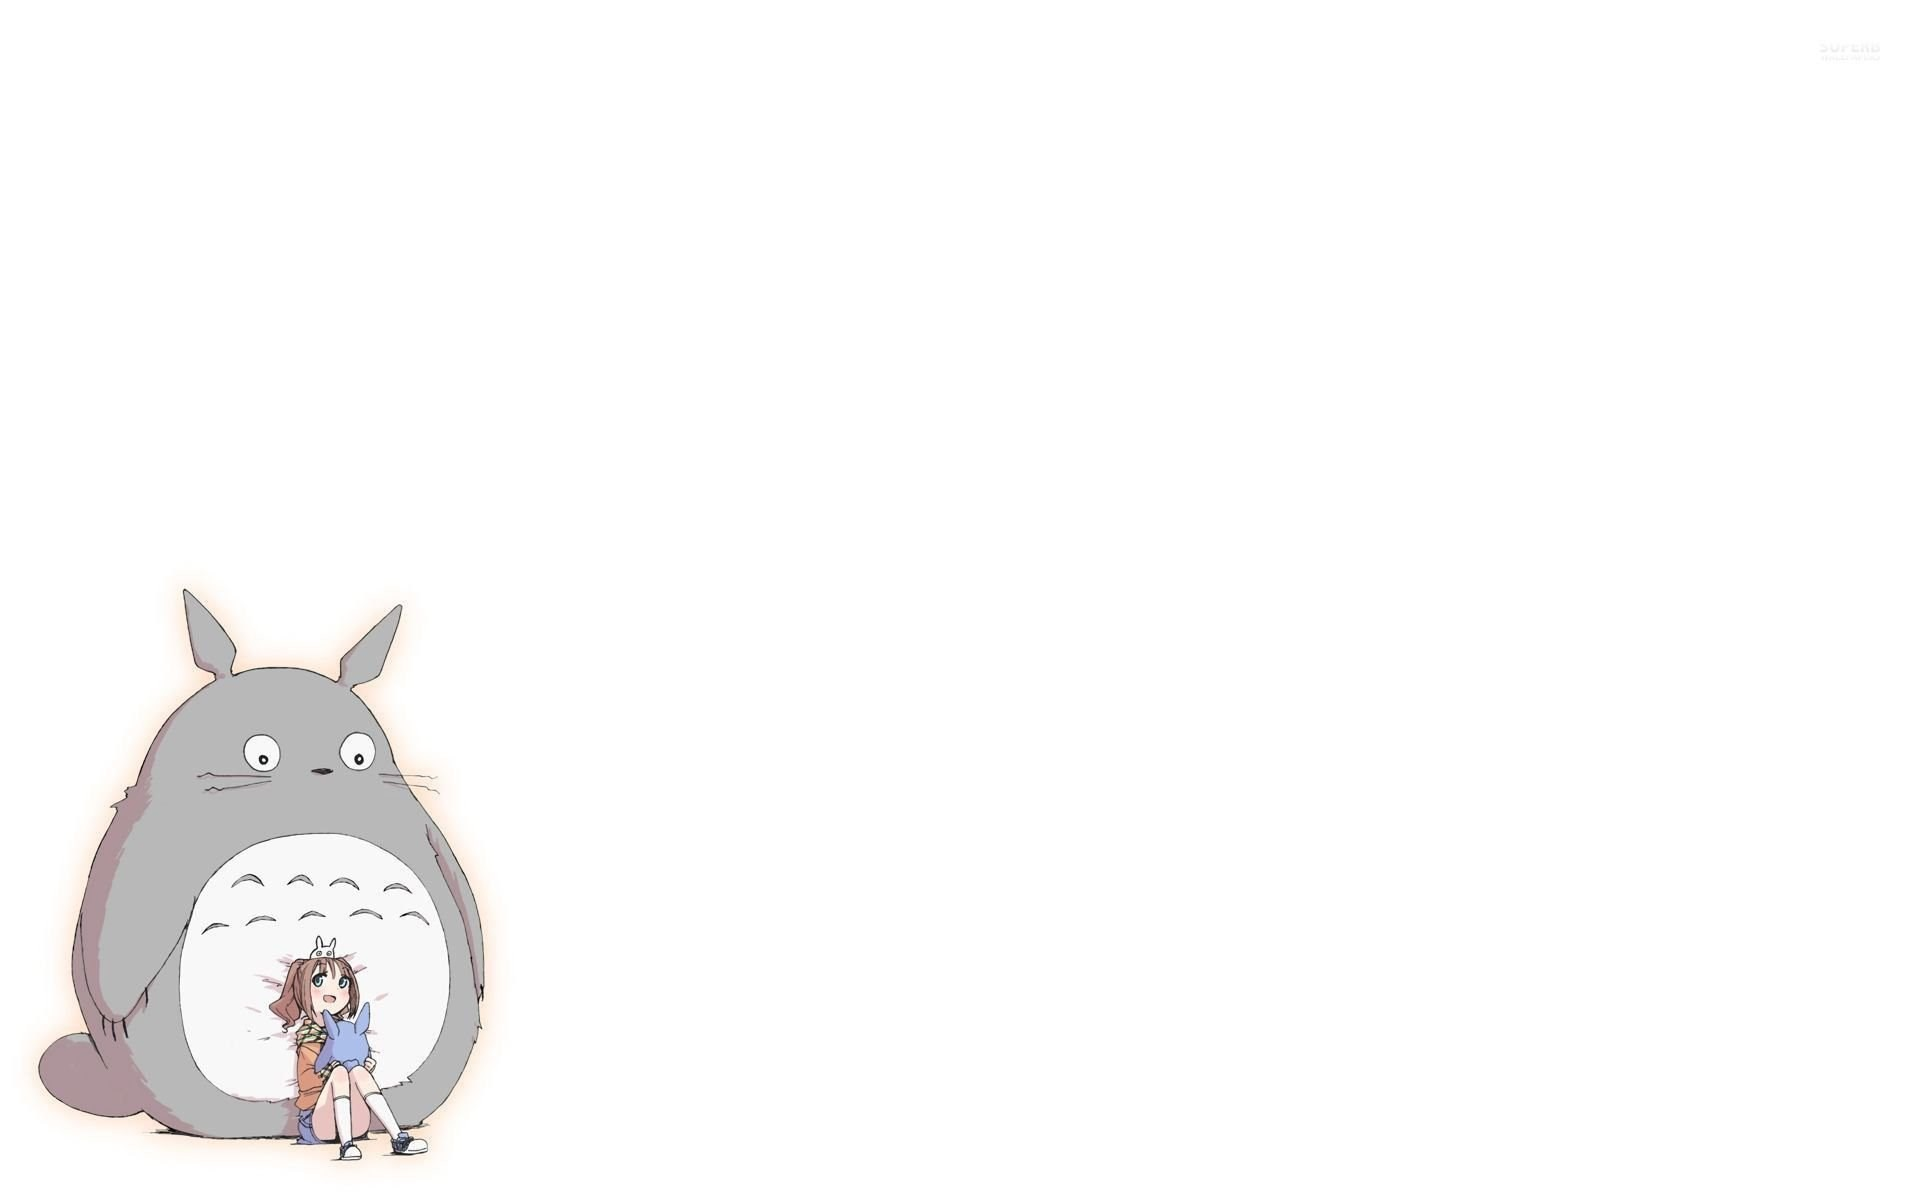 Totoro Background Download Free Awesome High Resolution Images, Photos, Reviews